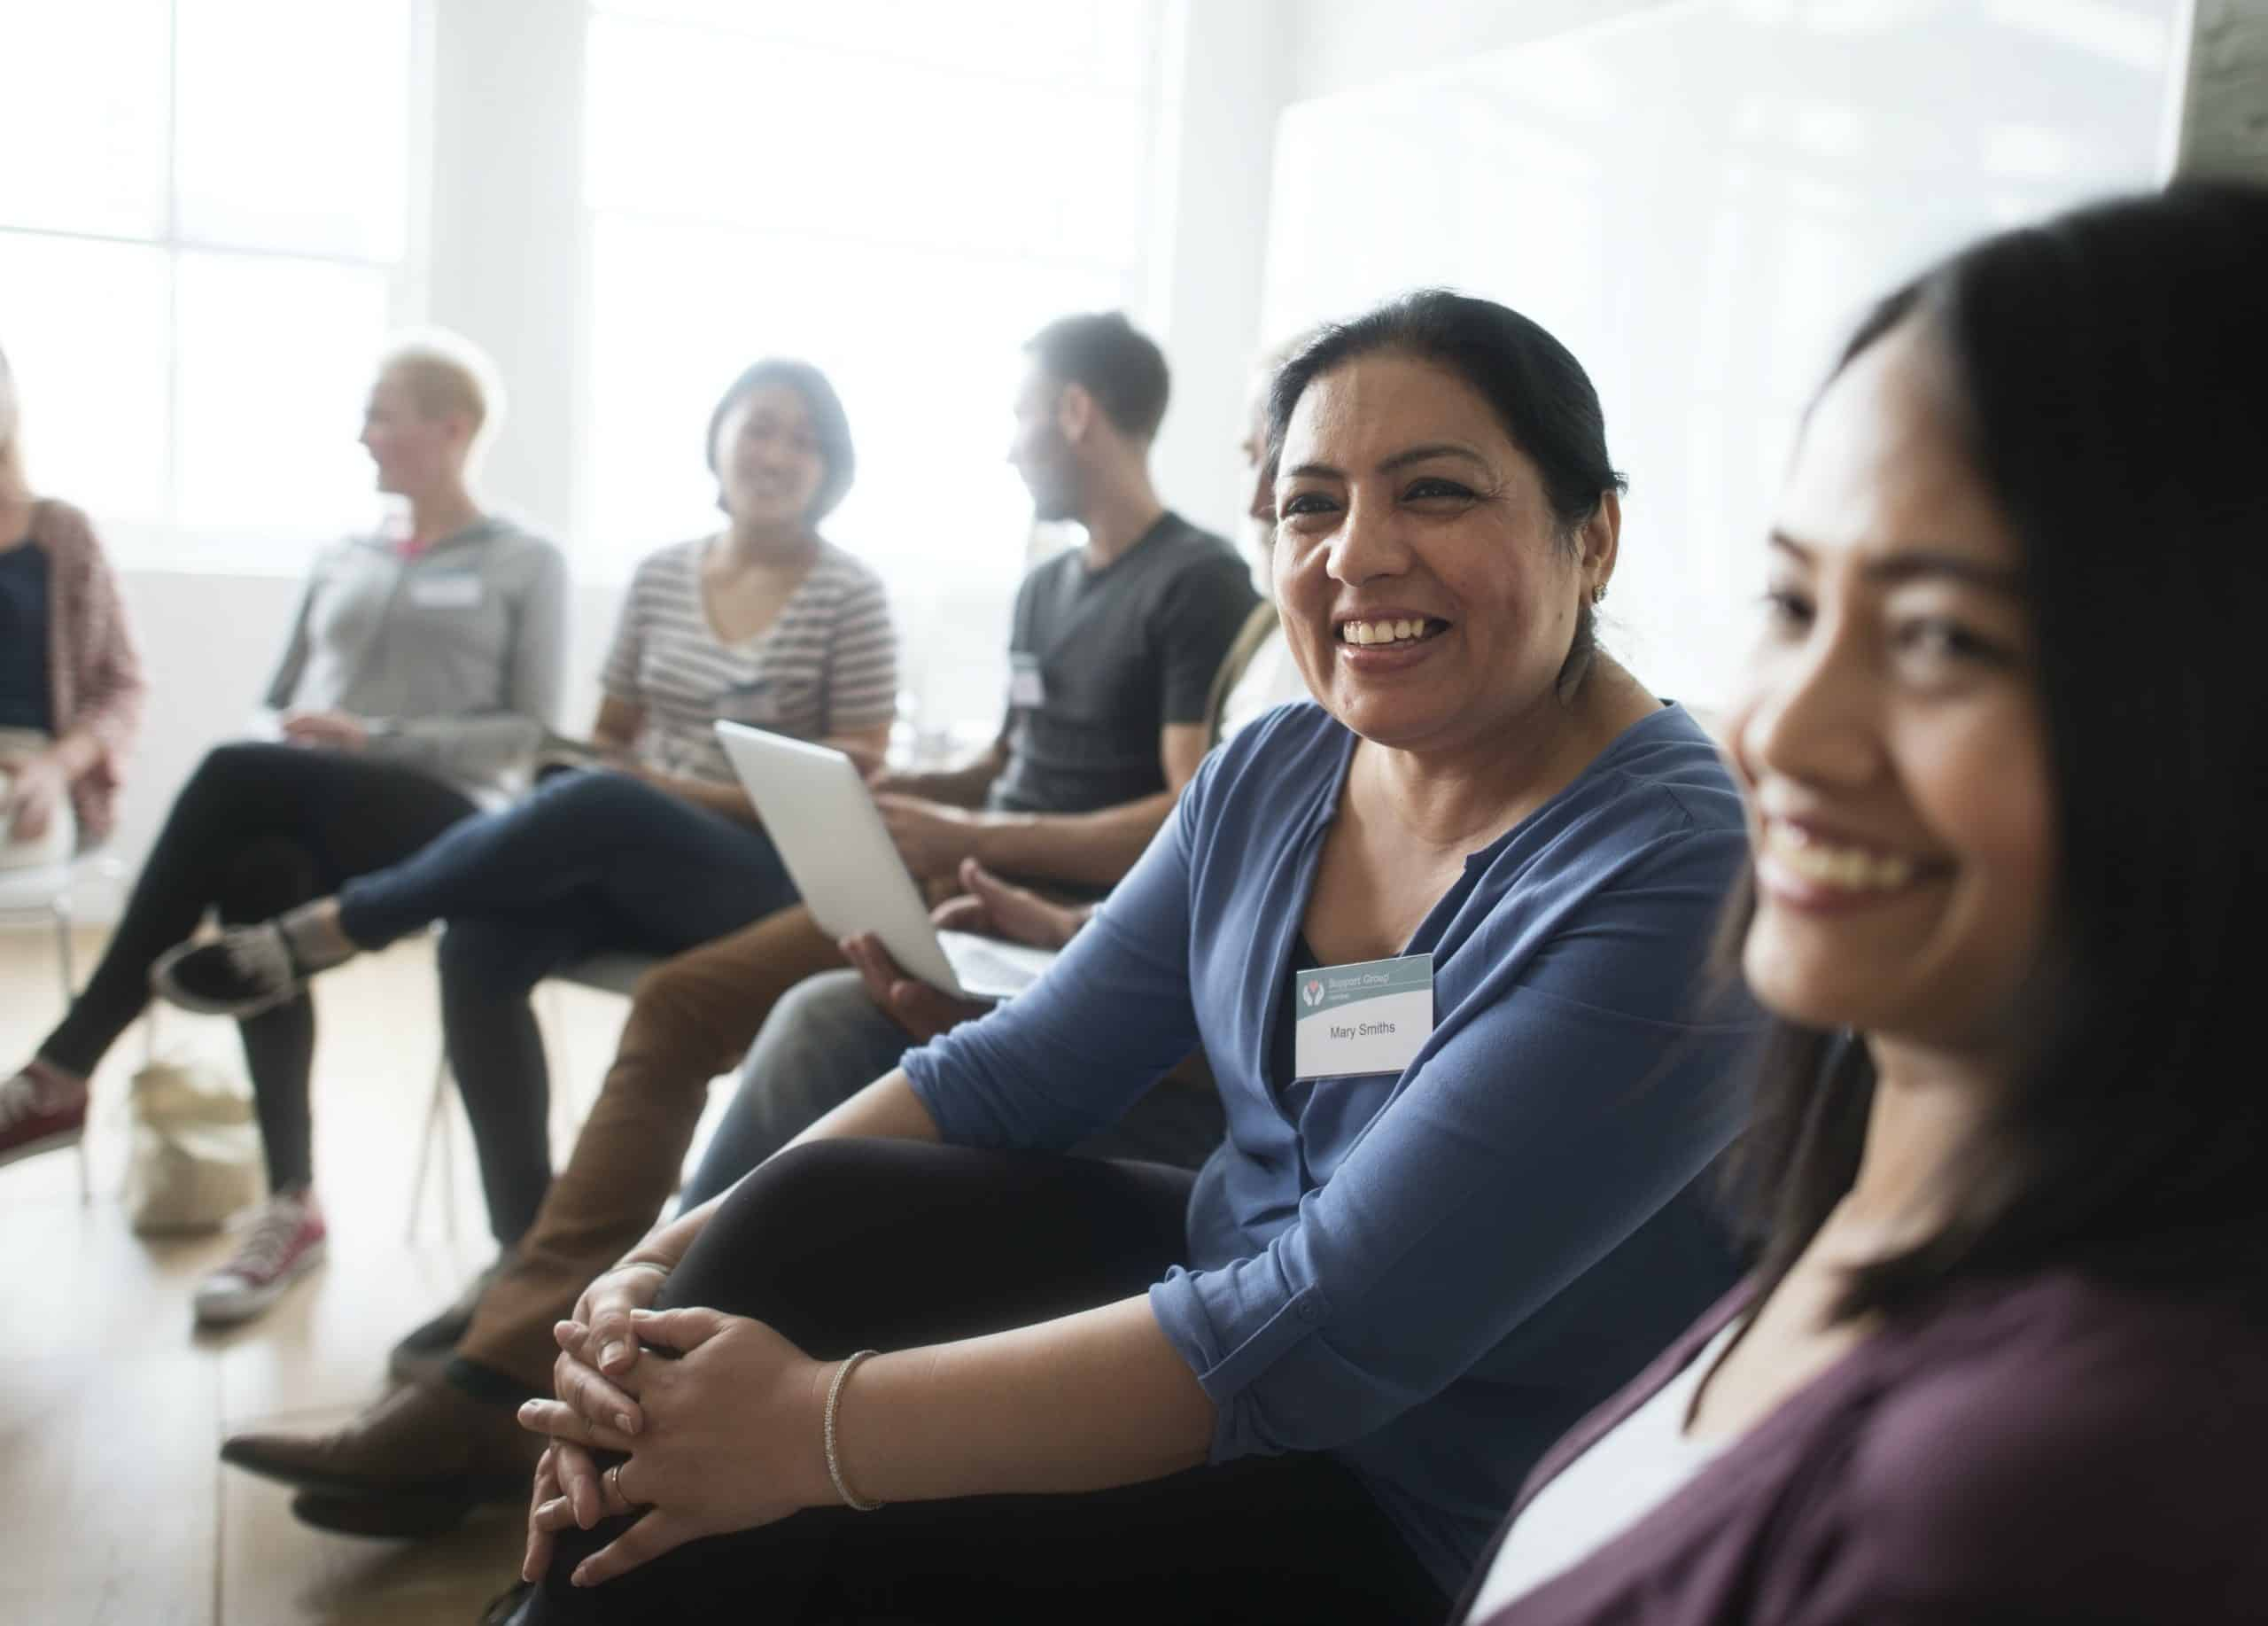 Smiling group participants sit on chairs in a semi-circle